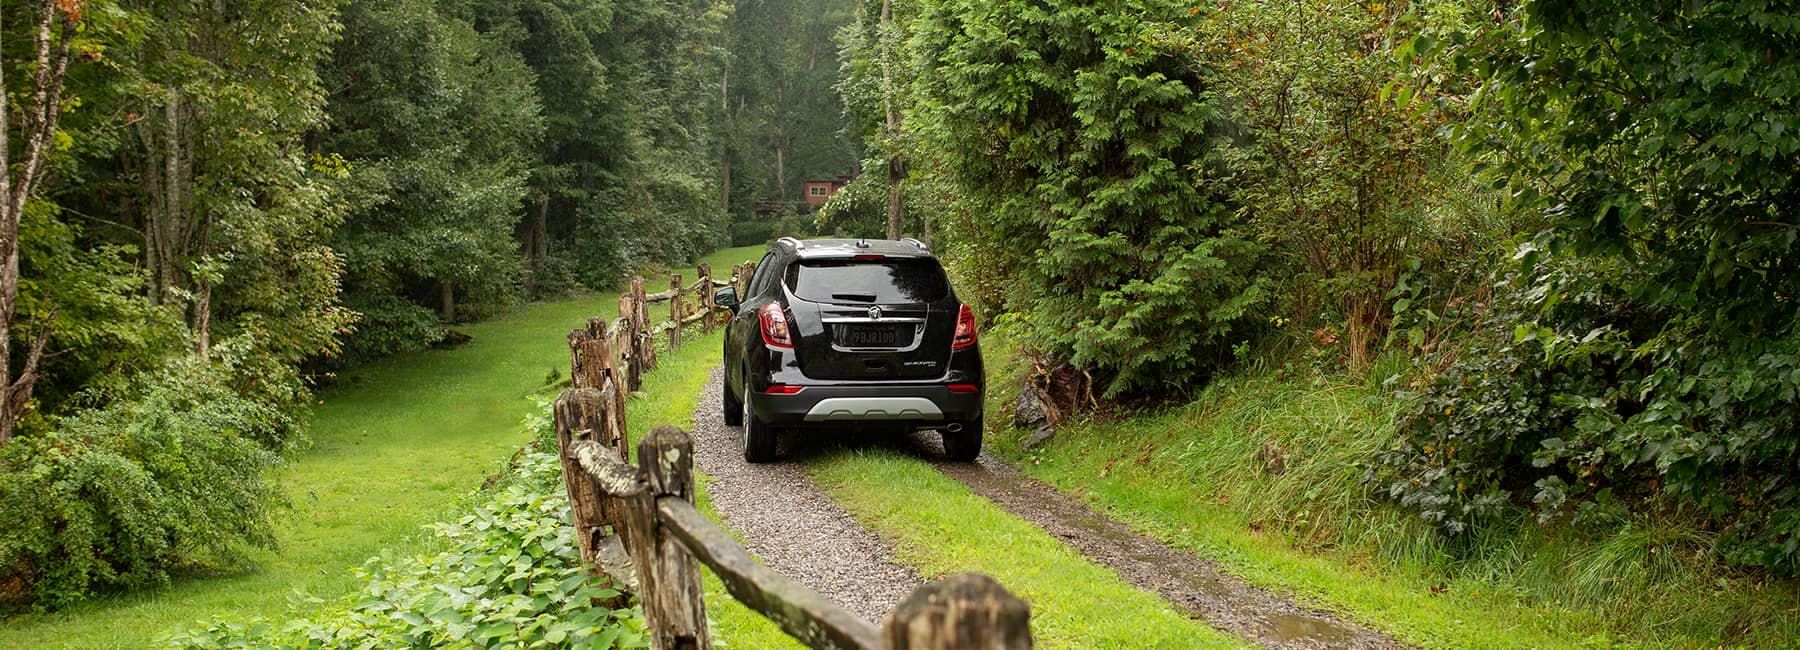 2020 Buick Encore on a Forest Path